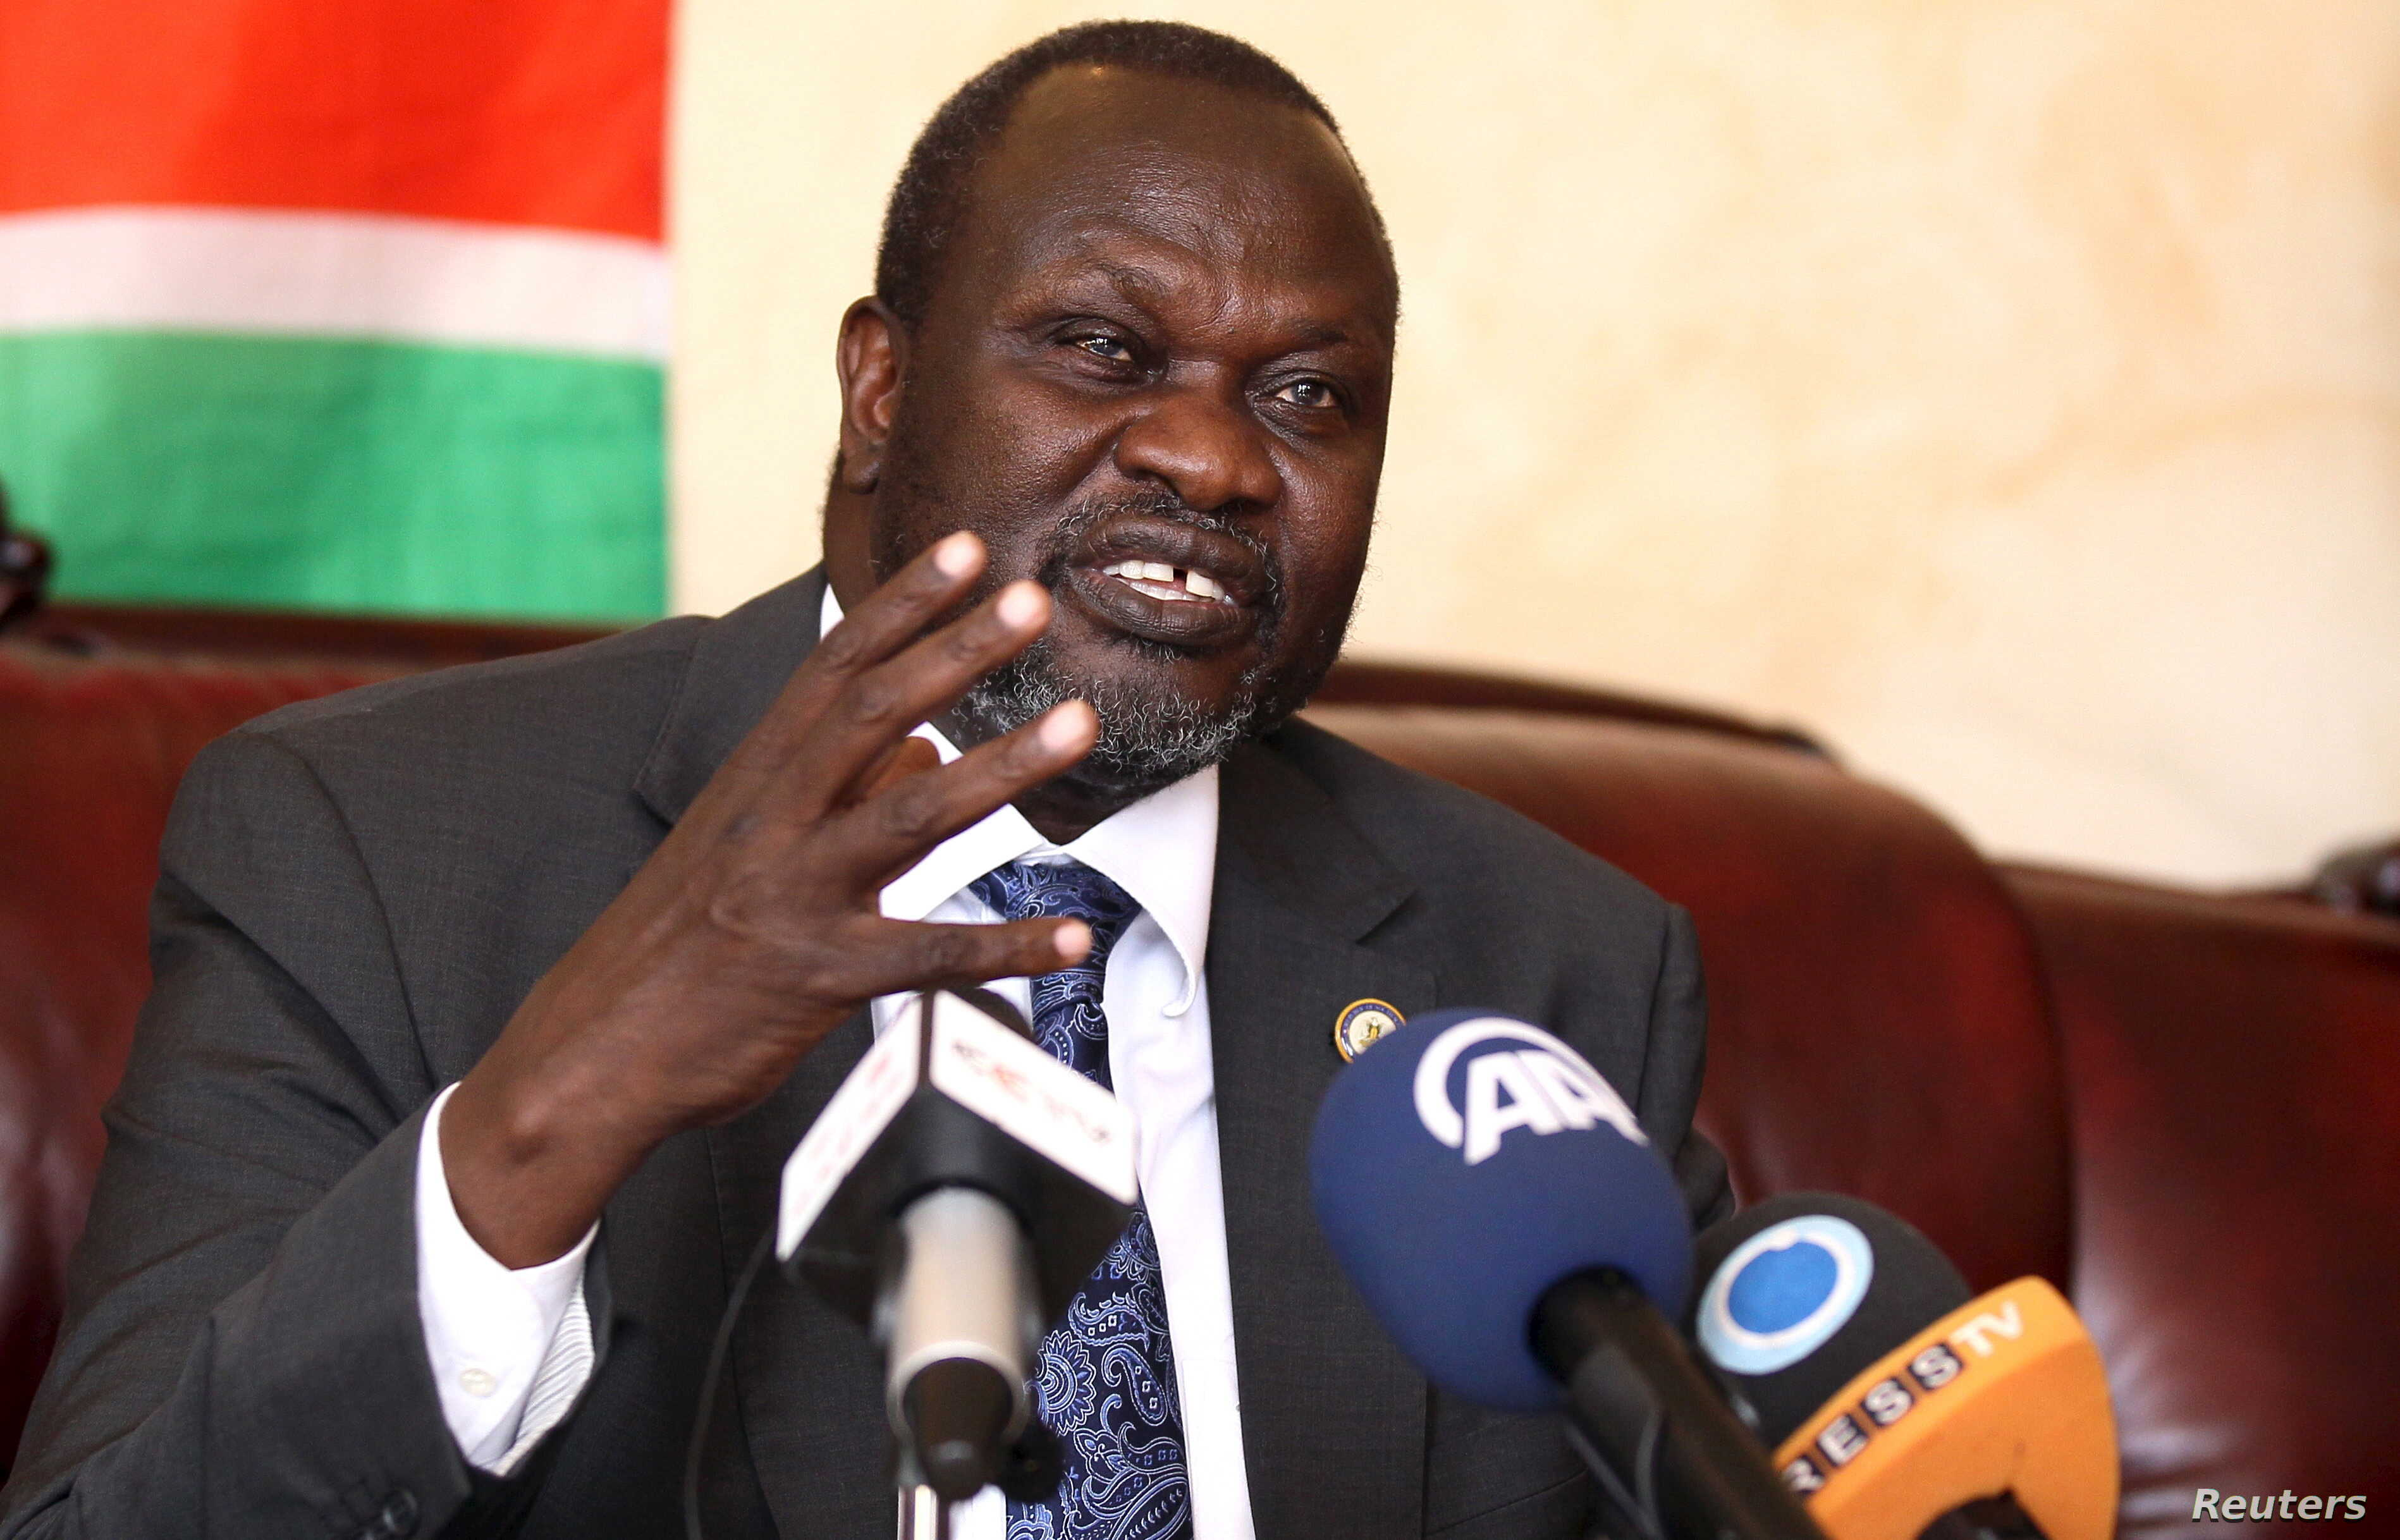 South Sudan's rebel leader Riek Machar addresses a news conference in Ethiopia's capital Addis Ababa, Oct. 18, 2015.